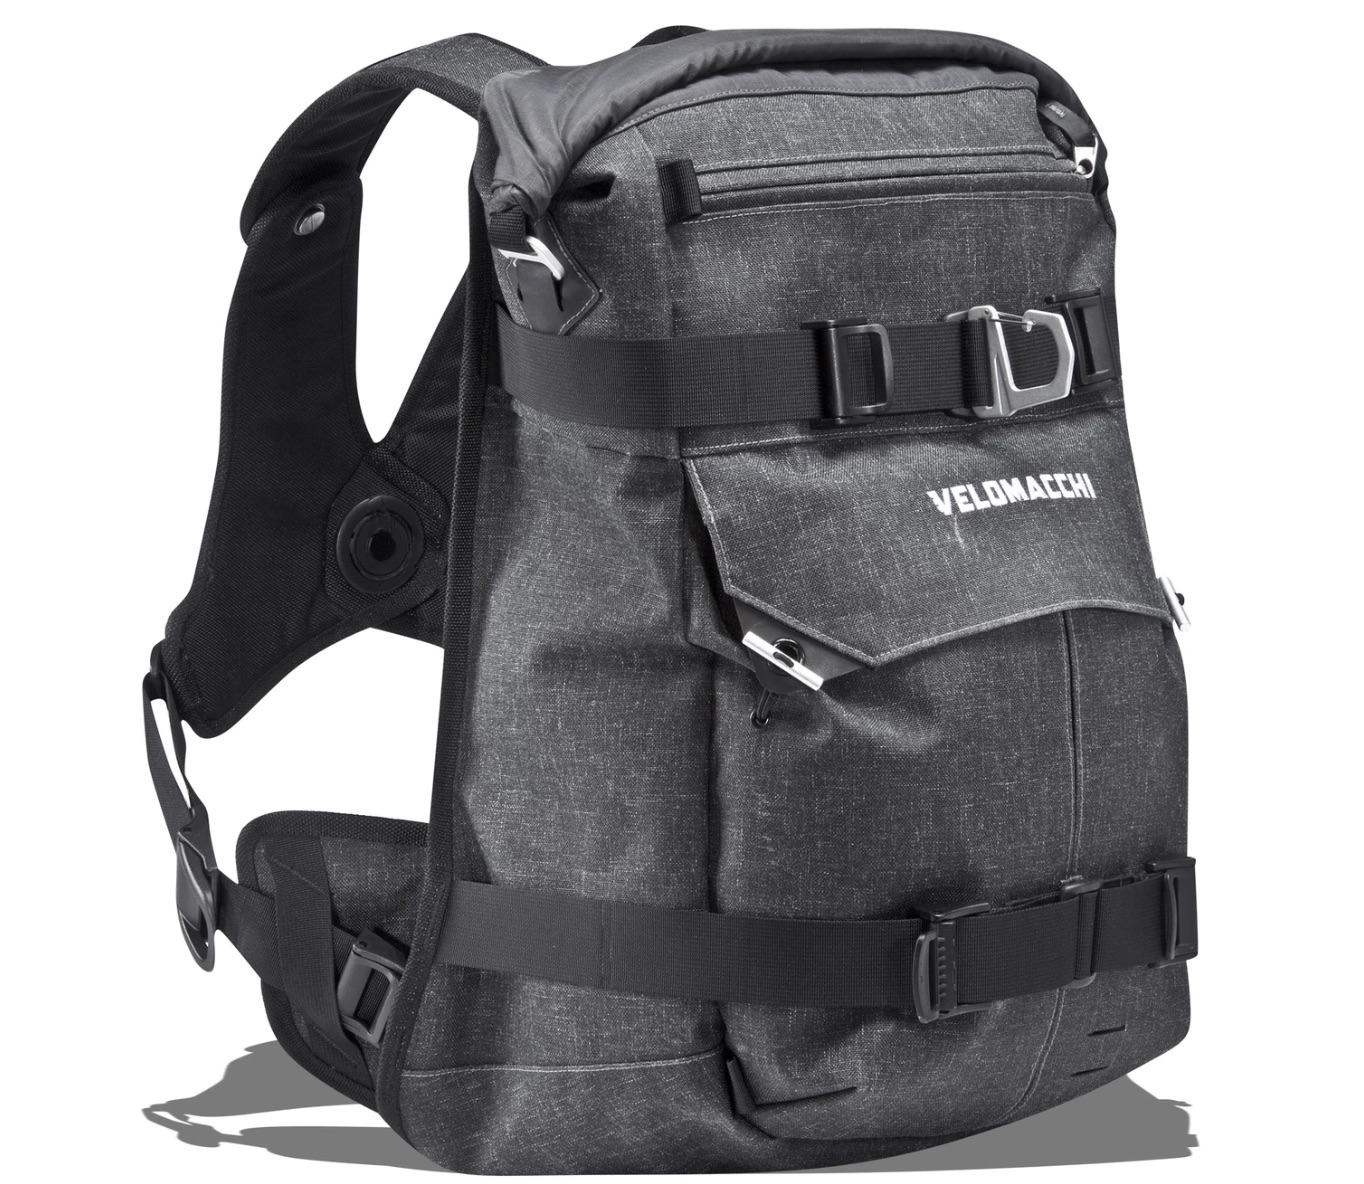 backpack backpacks motorcycle roll velomacchi 40l travel